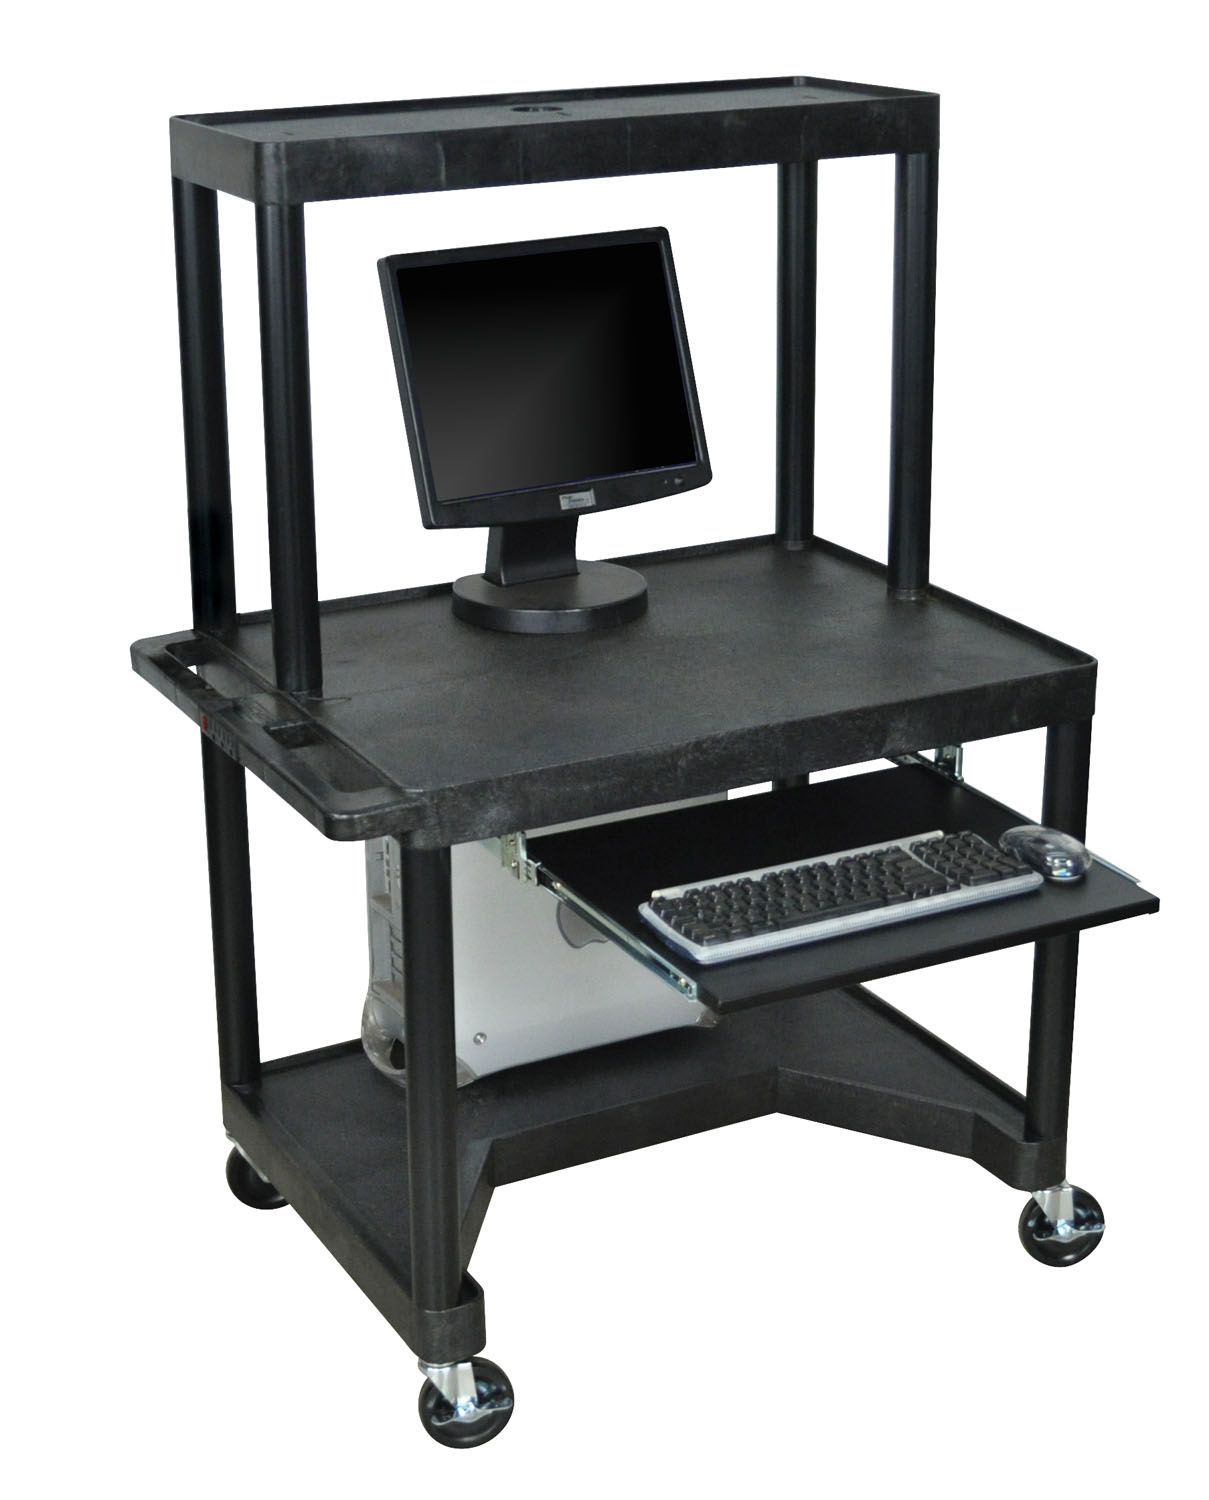 Offex Endura Mobile Computer Workstation / Desk With Plastic Shelf And Casters - Black at Sears.com